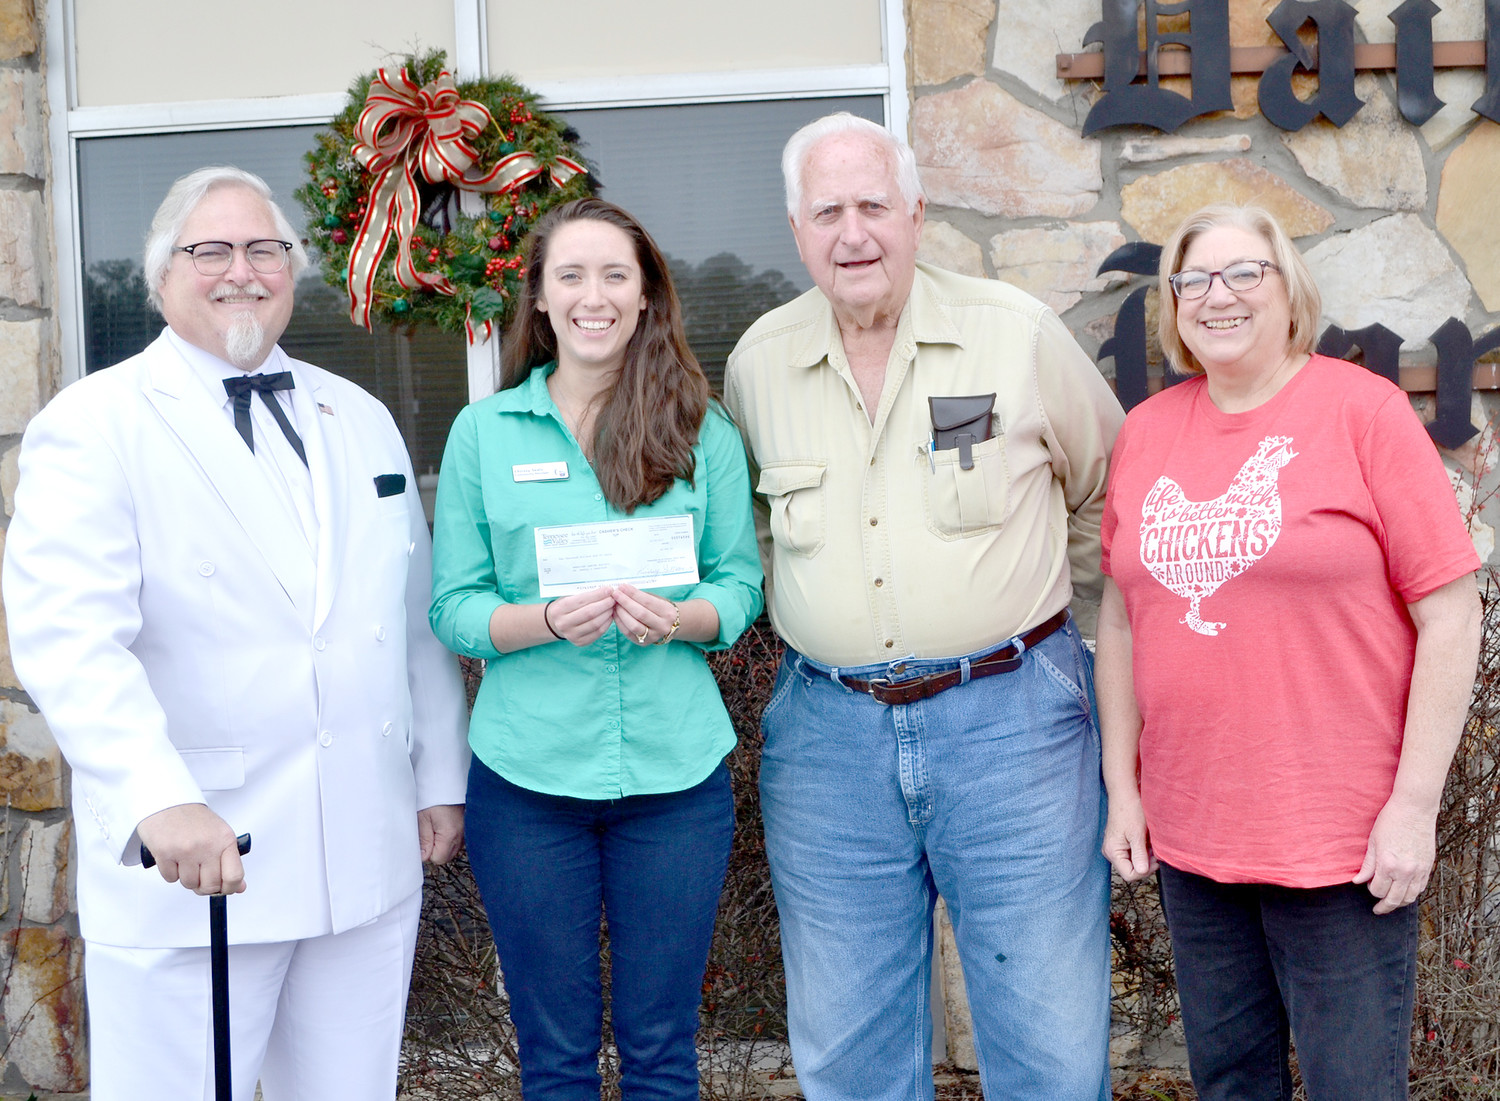 THE BUCKET COLONEL recently presented a $2,000 check to Chrissy Seals of Bradley County Relay for Life. The donation comes from the sale of a tractor the colonel won at the Prater's Mill festival. From left are the Bucket Colonel (Randall Garrison), Seals, Jim Seitz, who purchased the tractor, and Joyce Garrison.